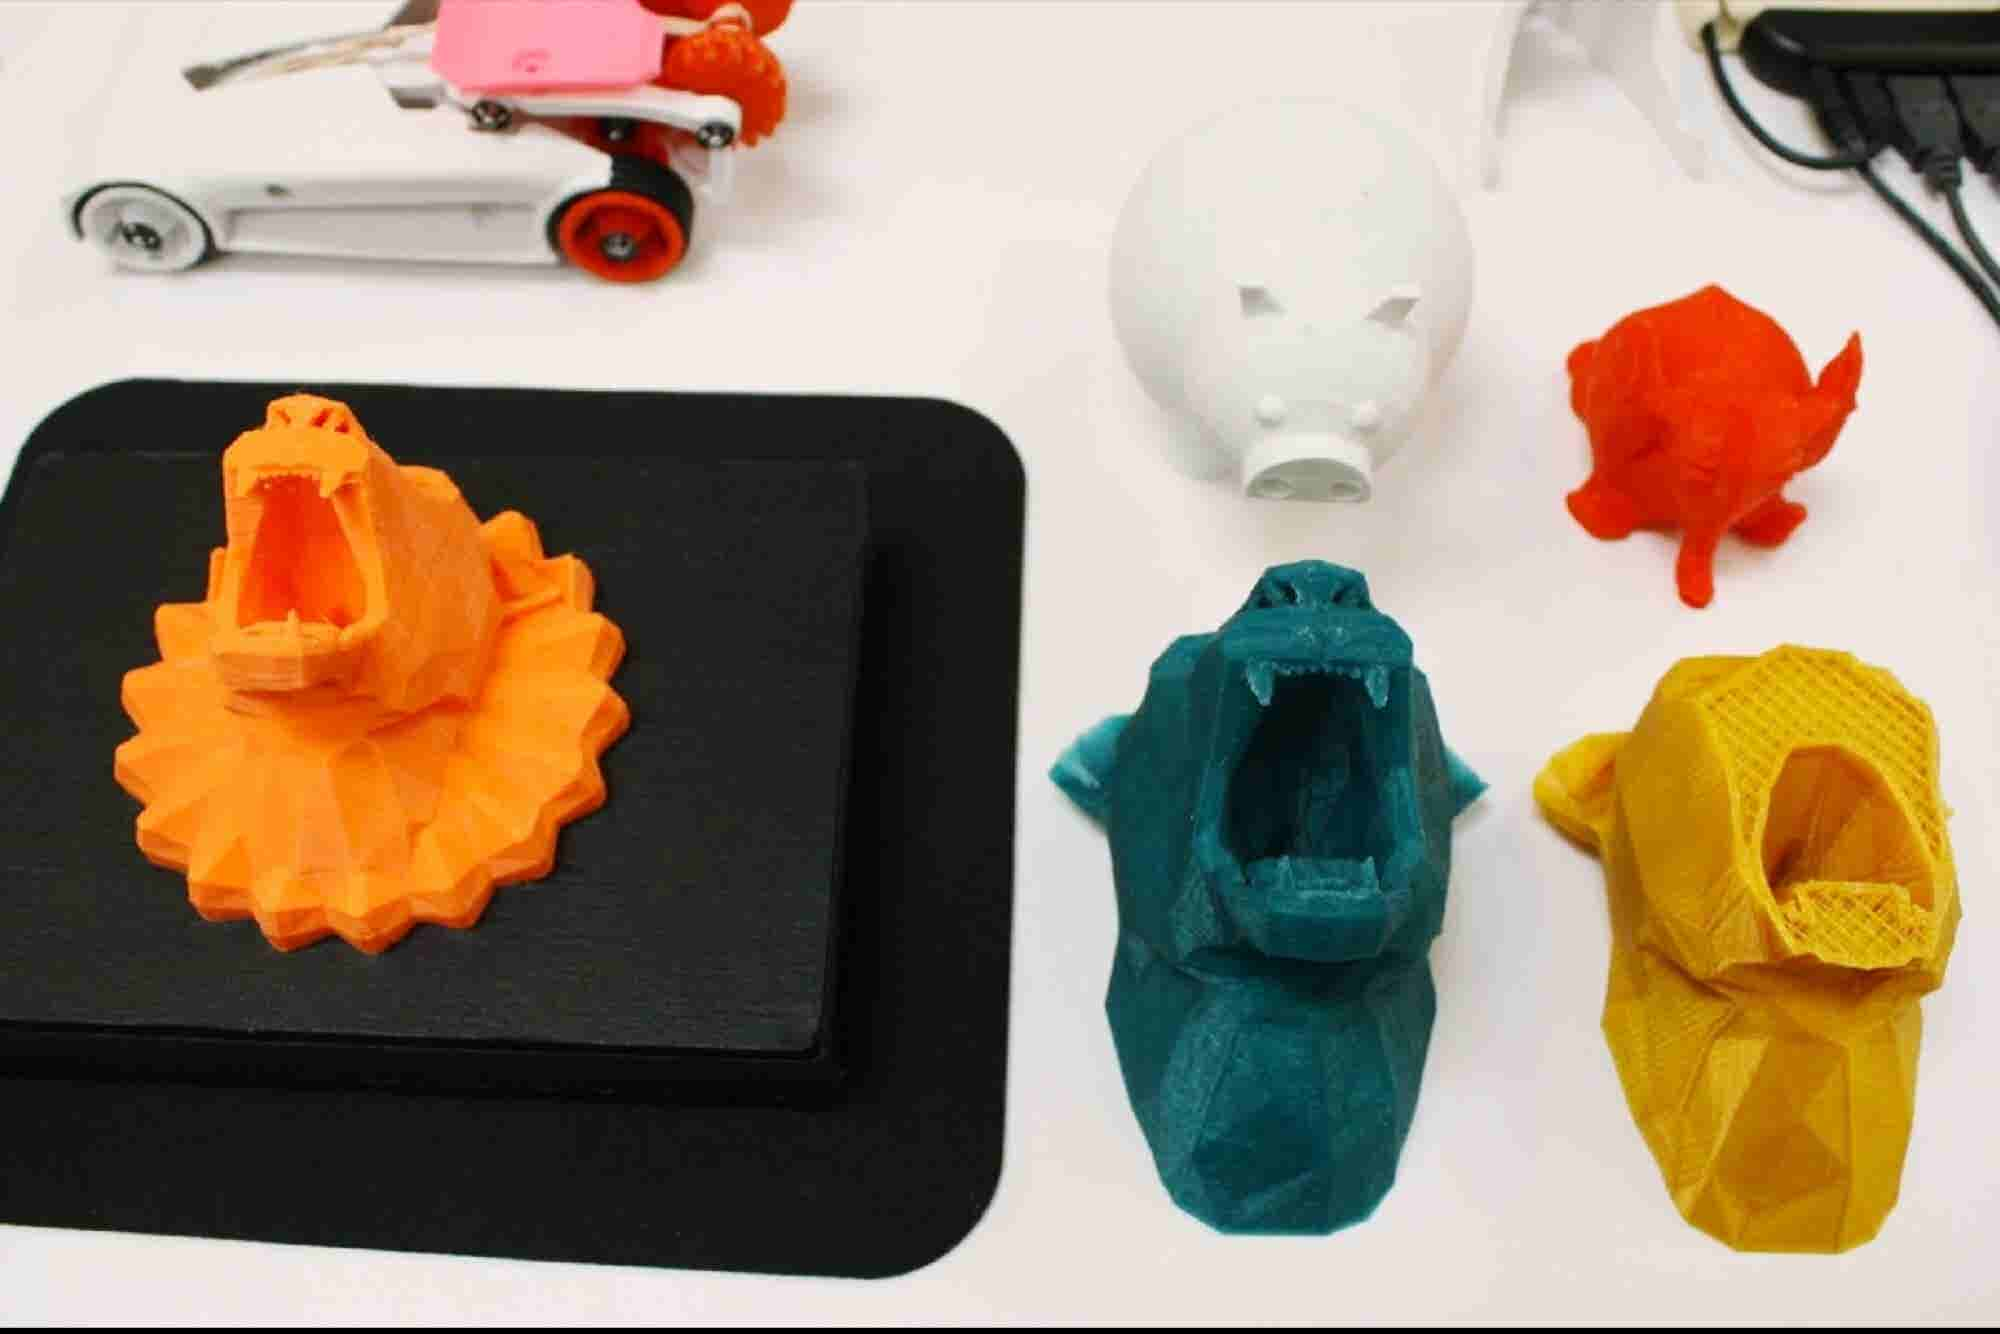 This is What 3D Printing Can Do to Ease Your Life